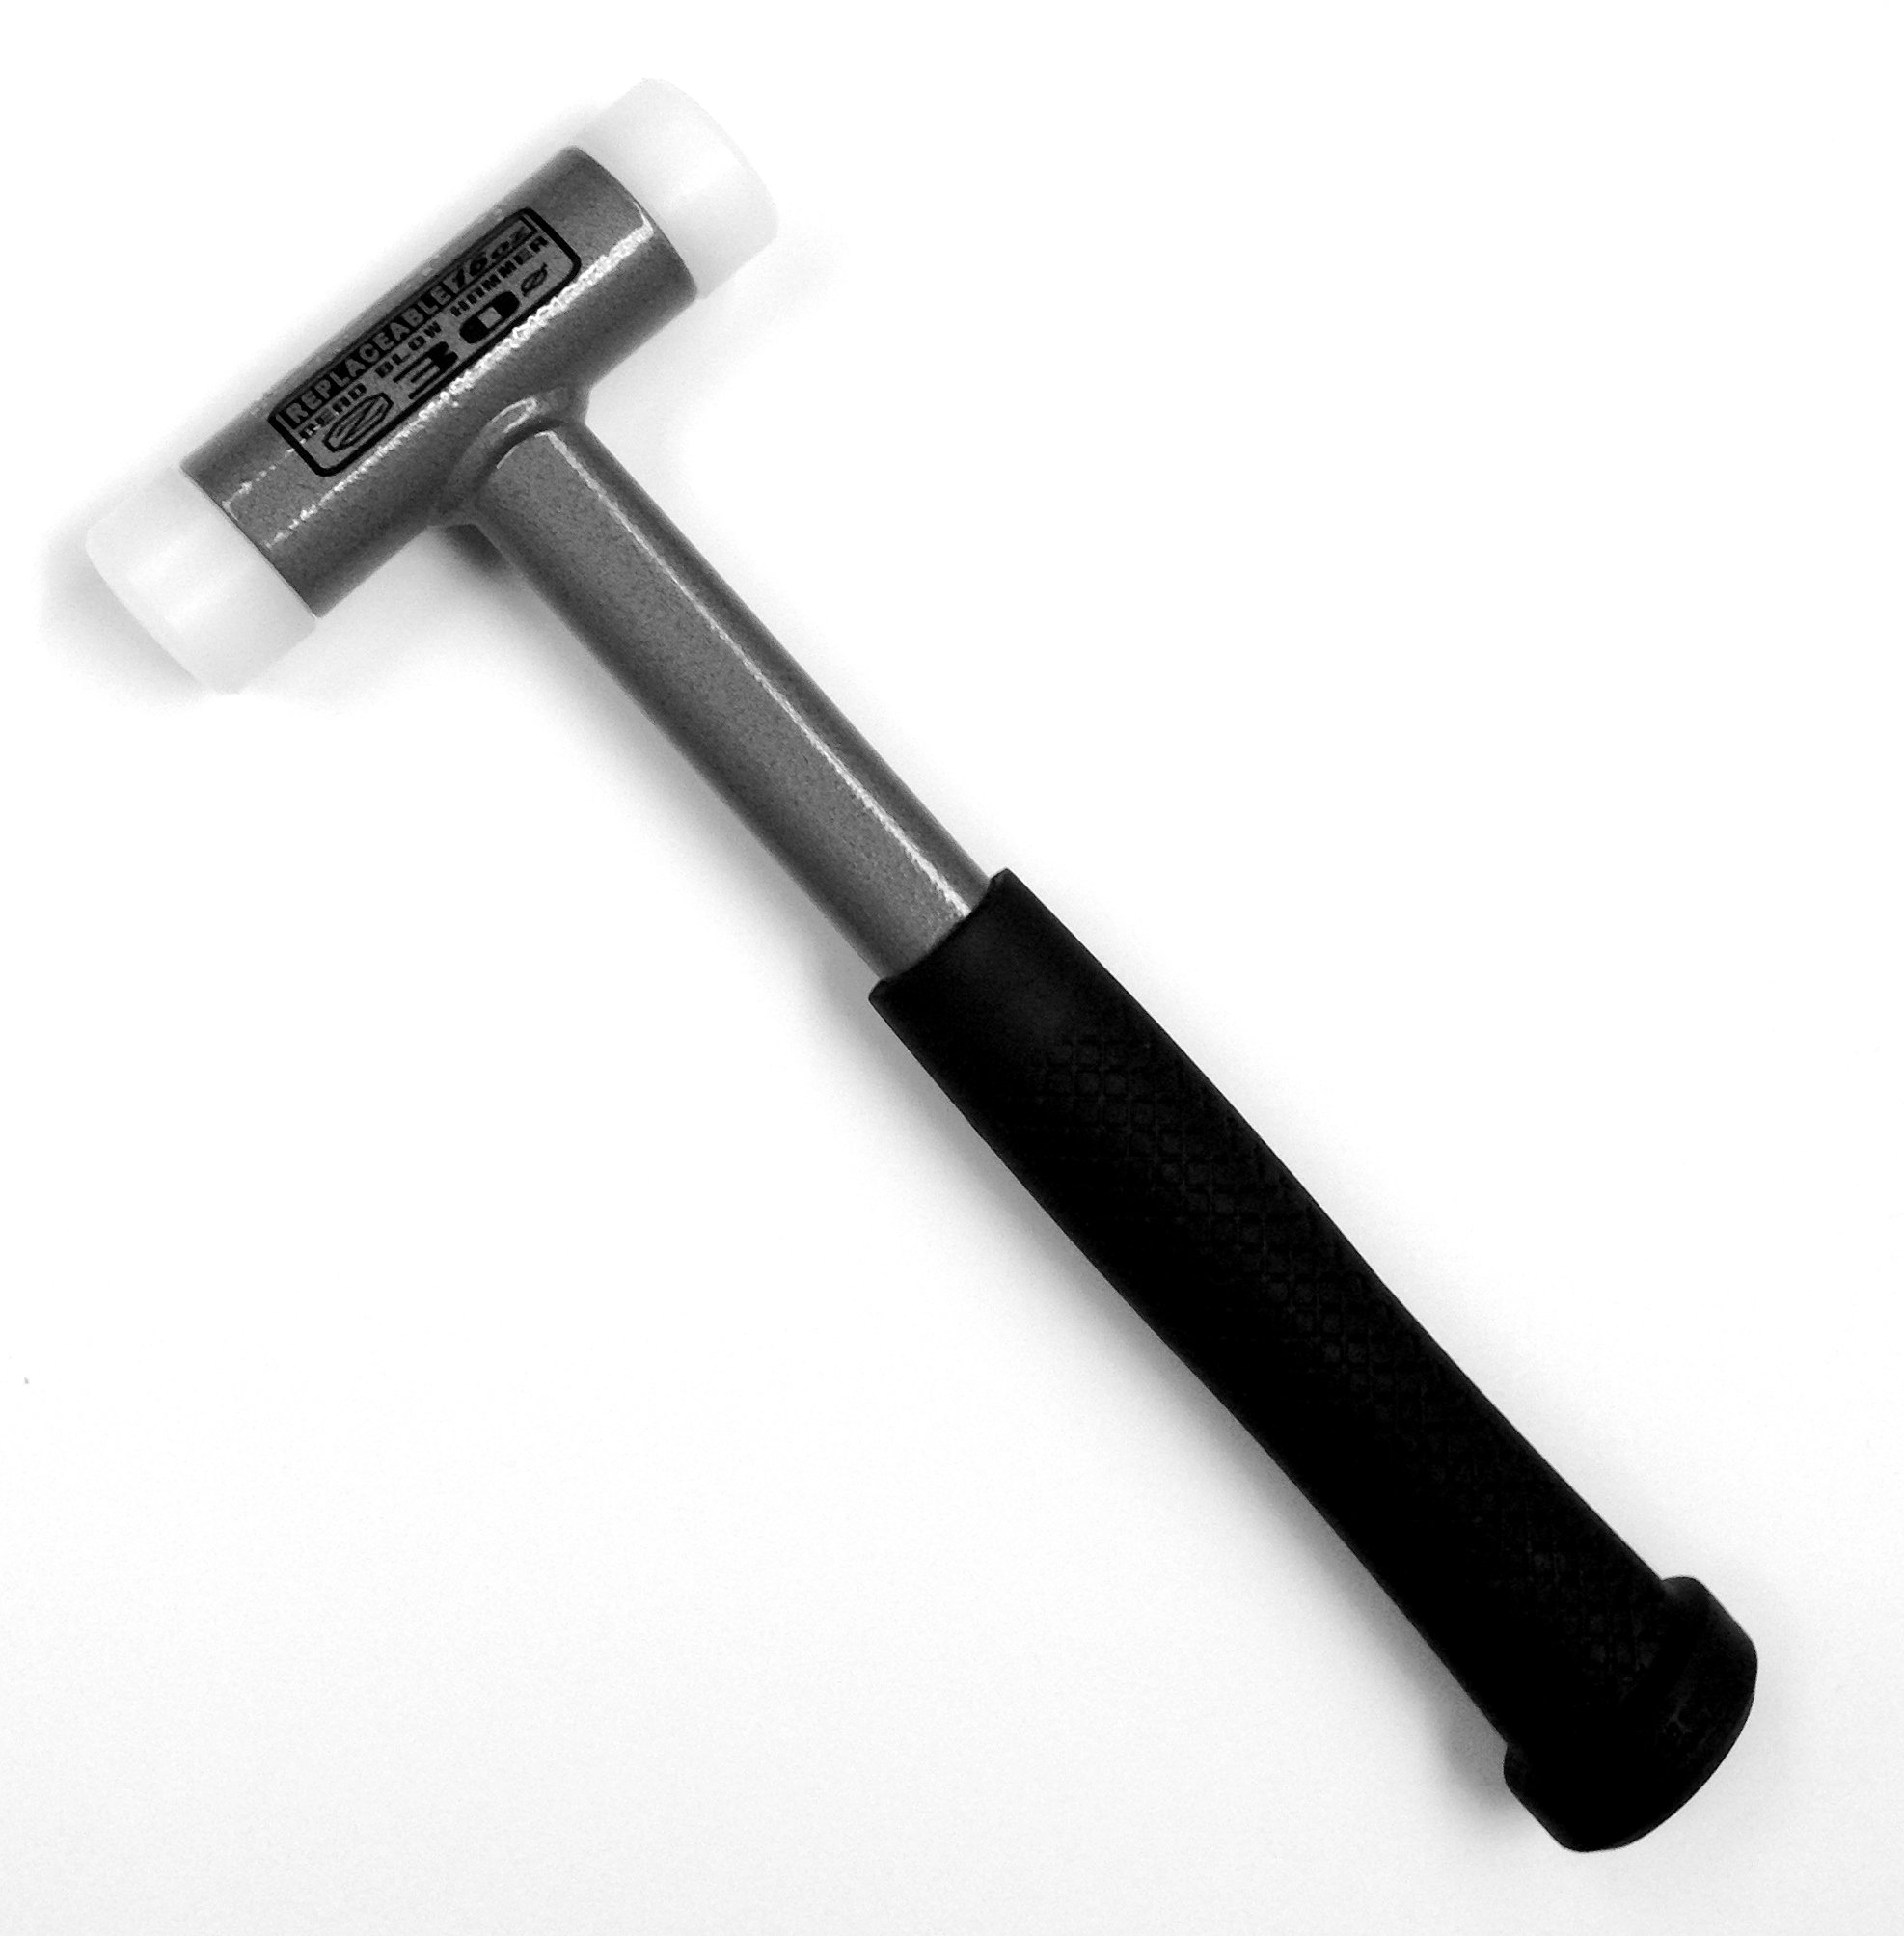 Pro Series by HHIP 7080-0302 Dead Blow Hammer, Upe Plastic, 16 oz.